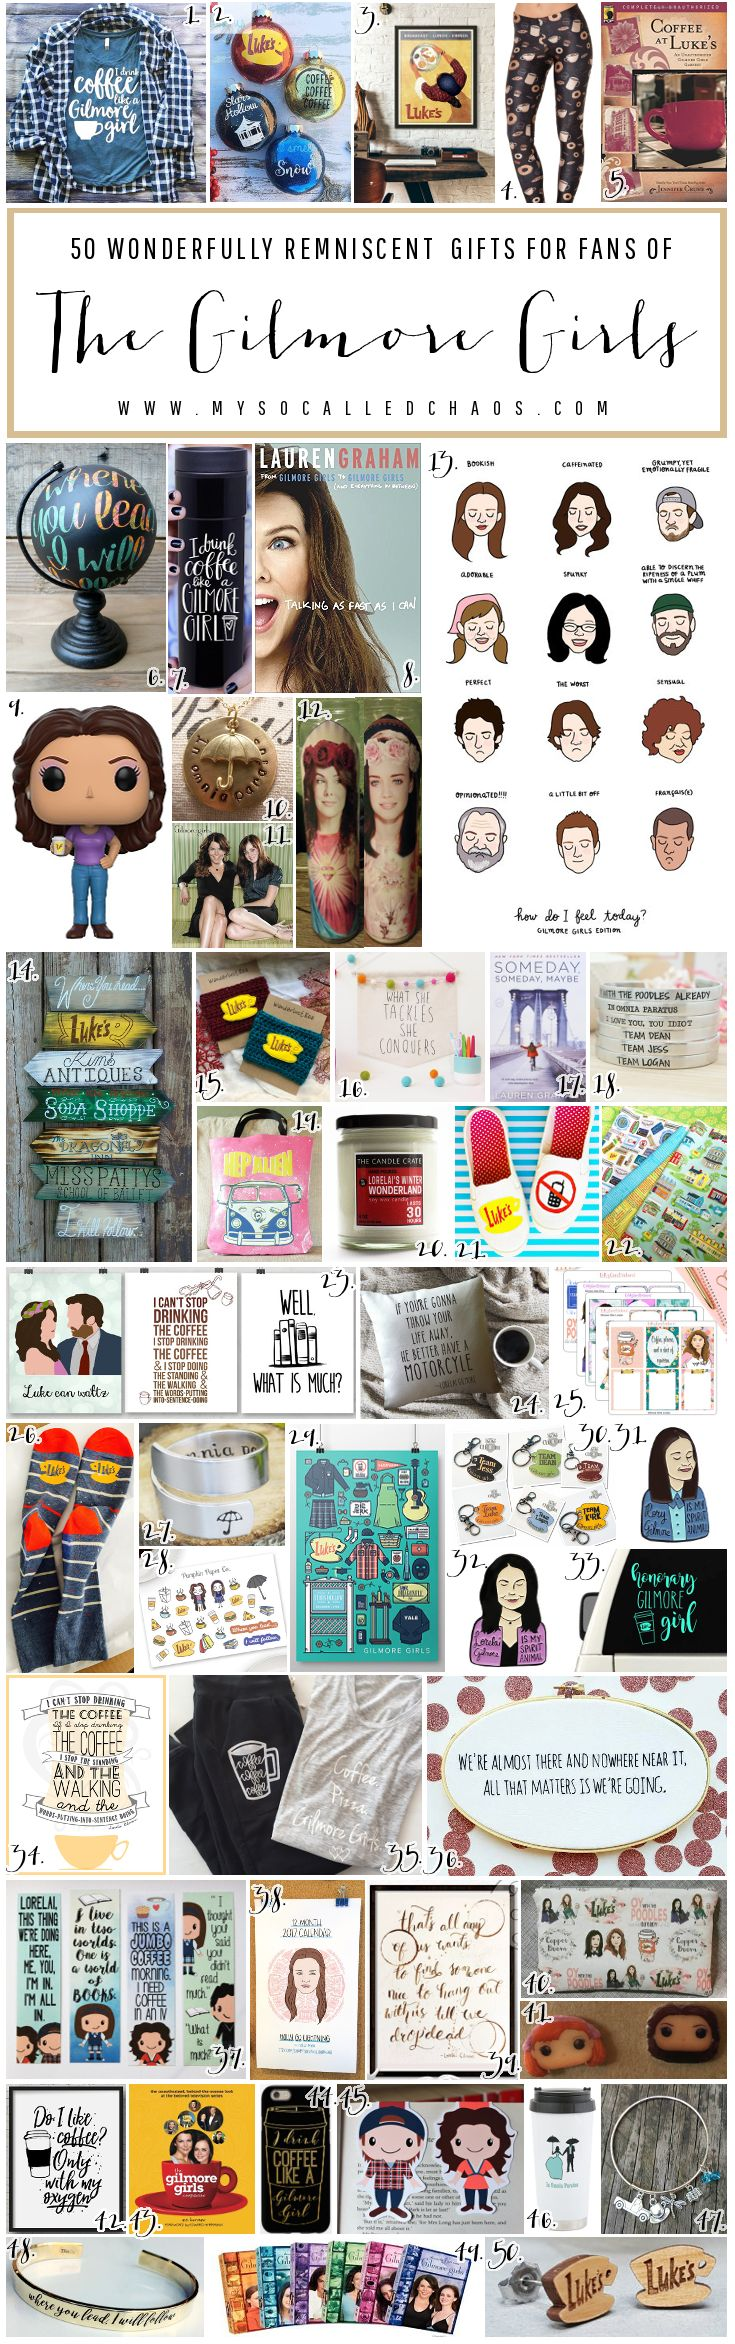 50 Gifts for Gilmore Girls Fans - Christmas Gift Ideas http://mysocalledchaos.com/2016/11/50-gifts-for-gilmore-girls-fans.html